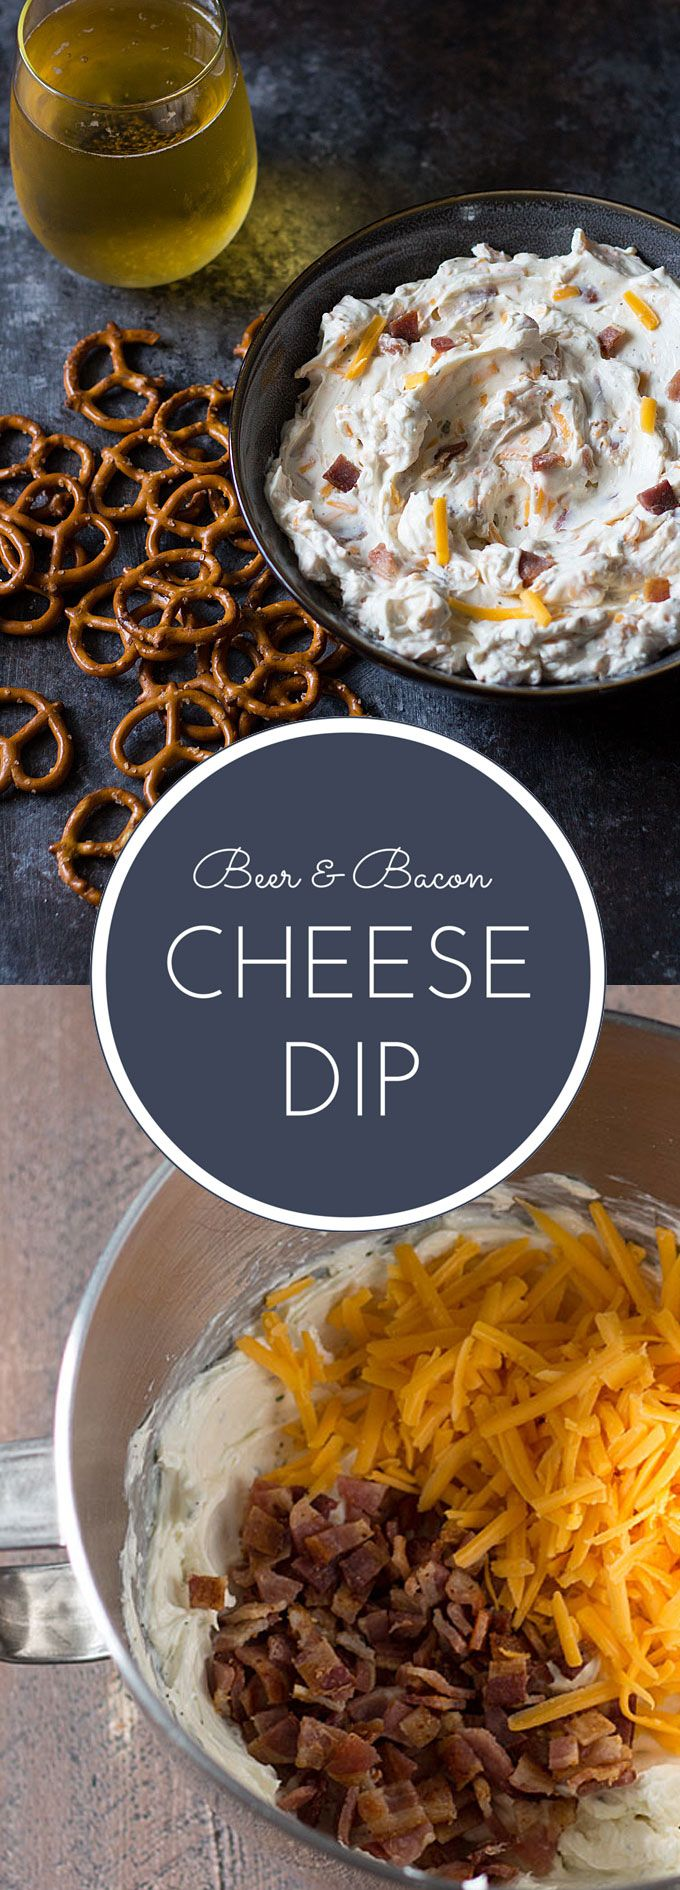 Beer and Bacon Cheese Dip -- A quick and easy appetizer perfect for game day!